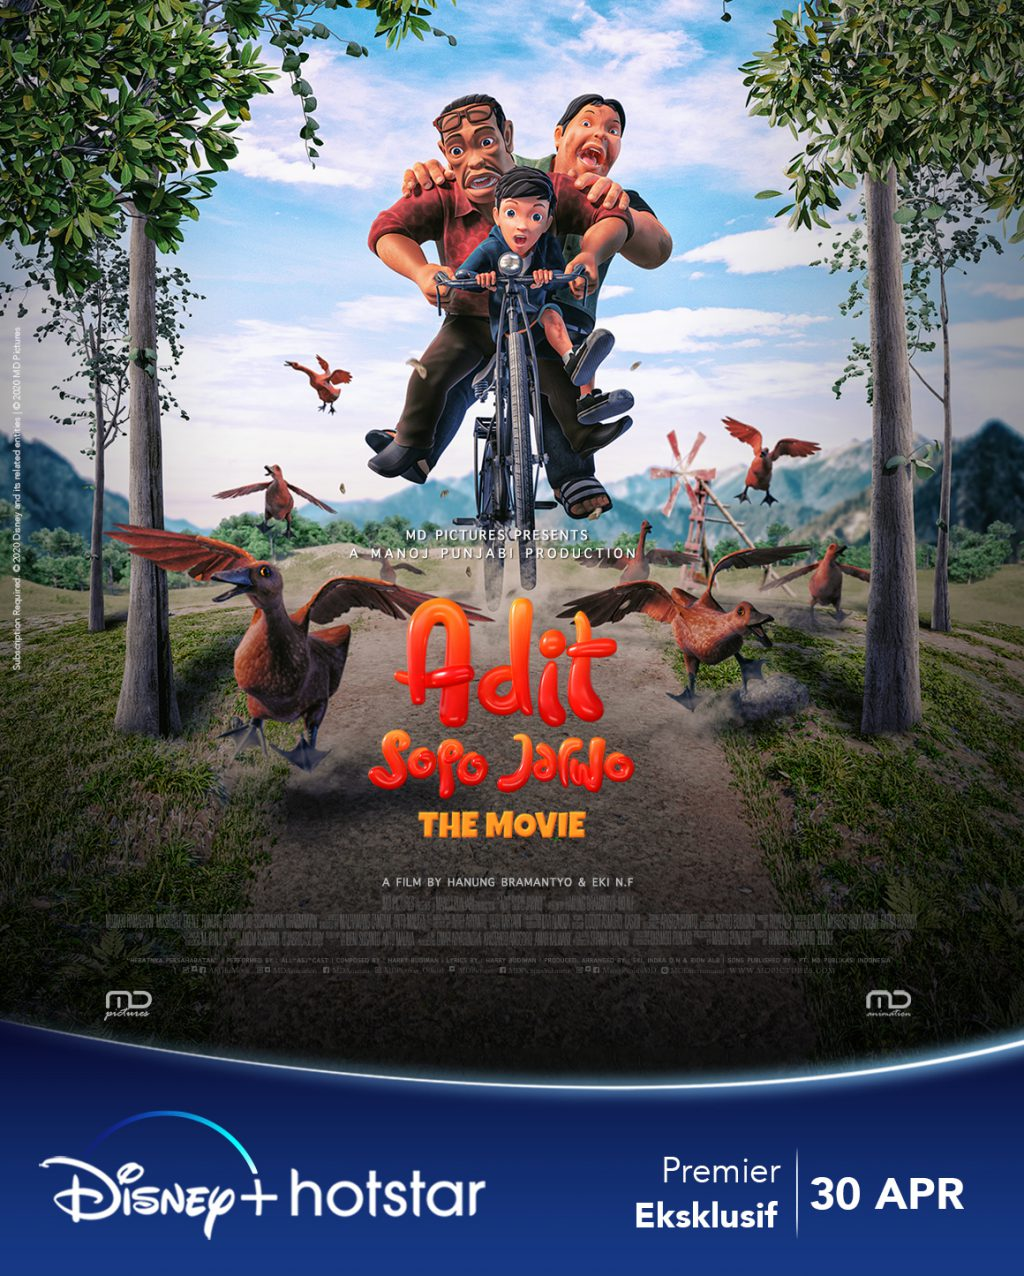 adit sopo jarwo the movie